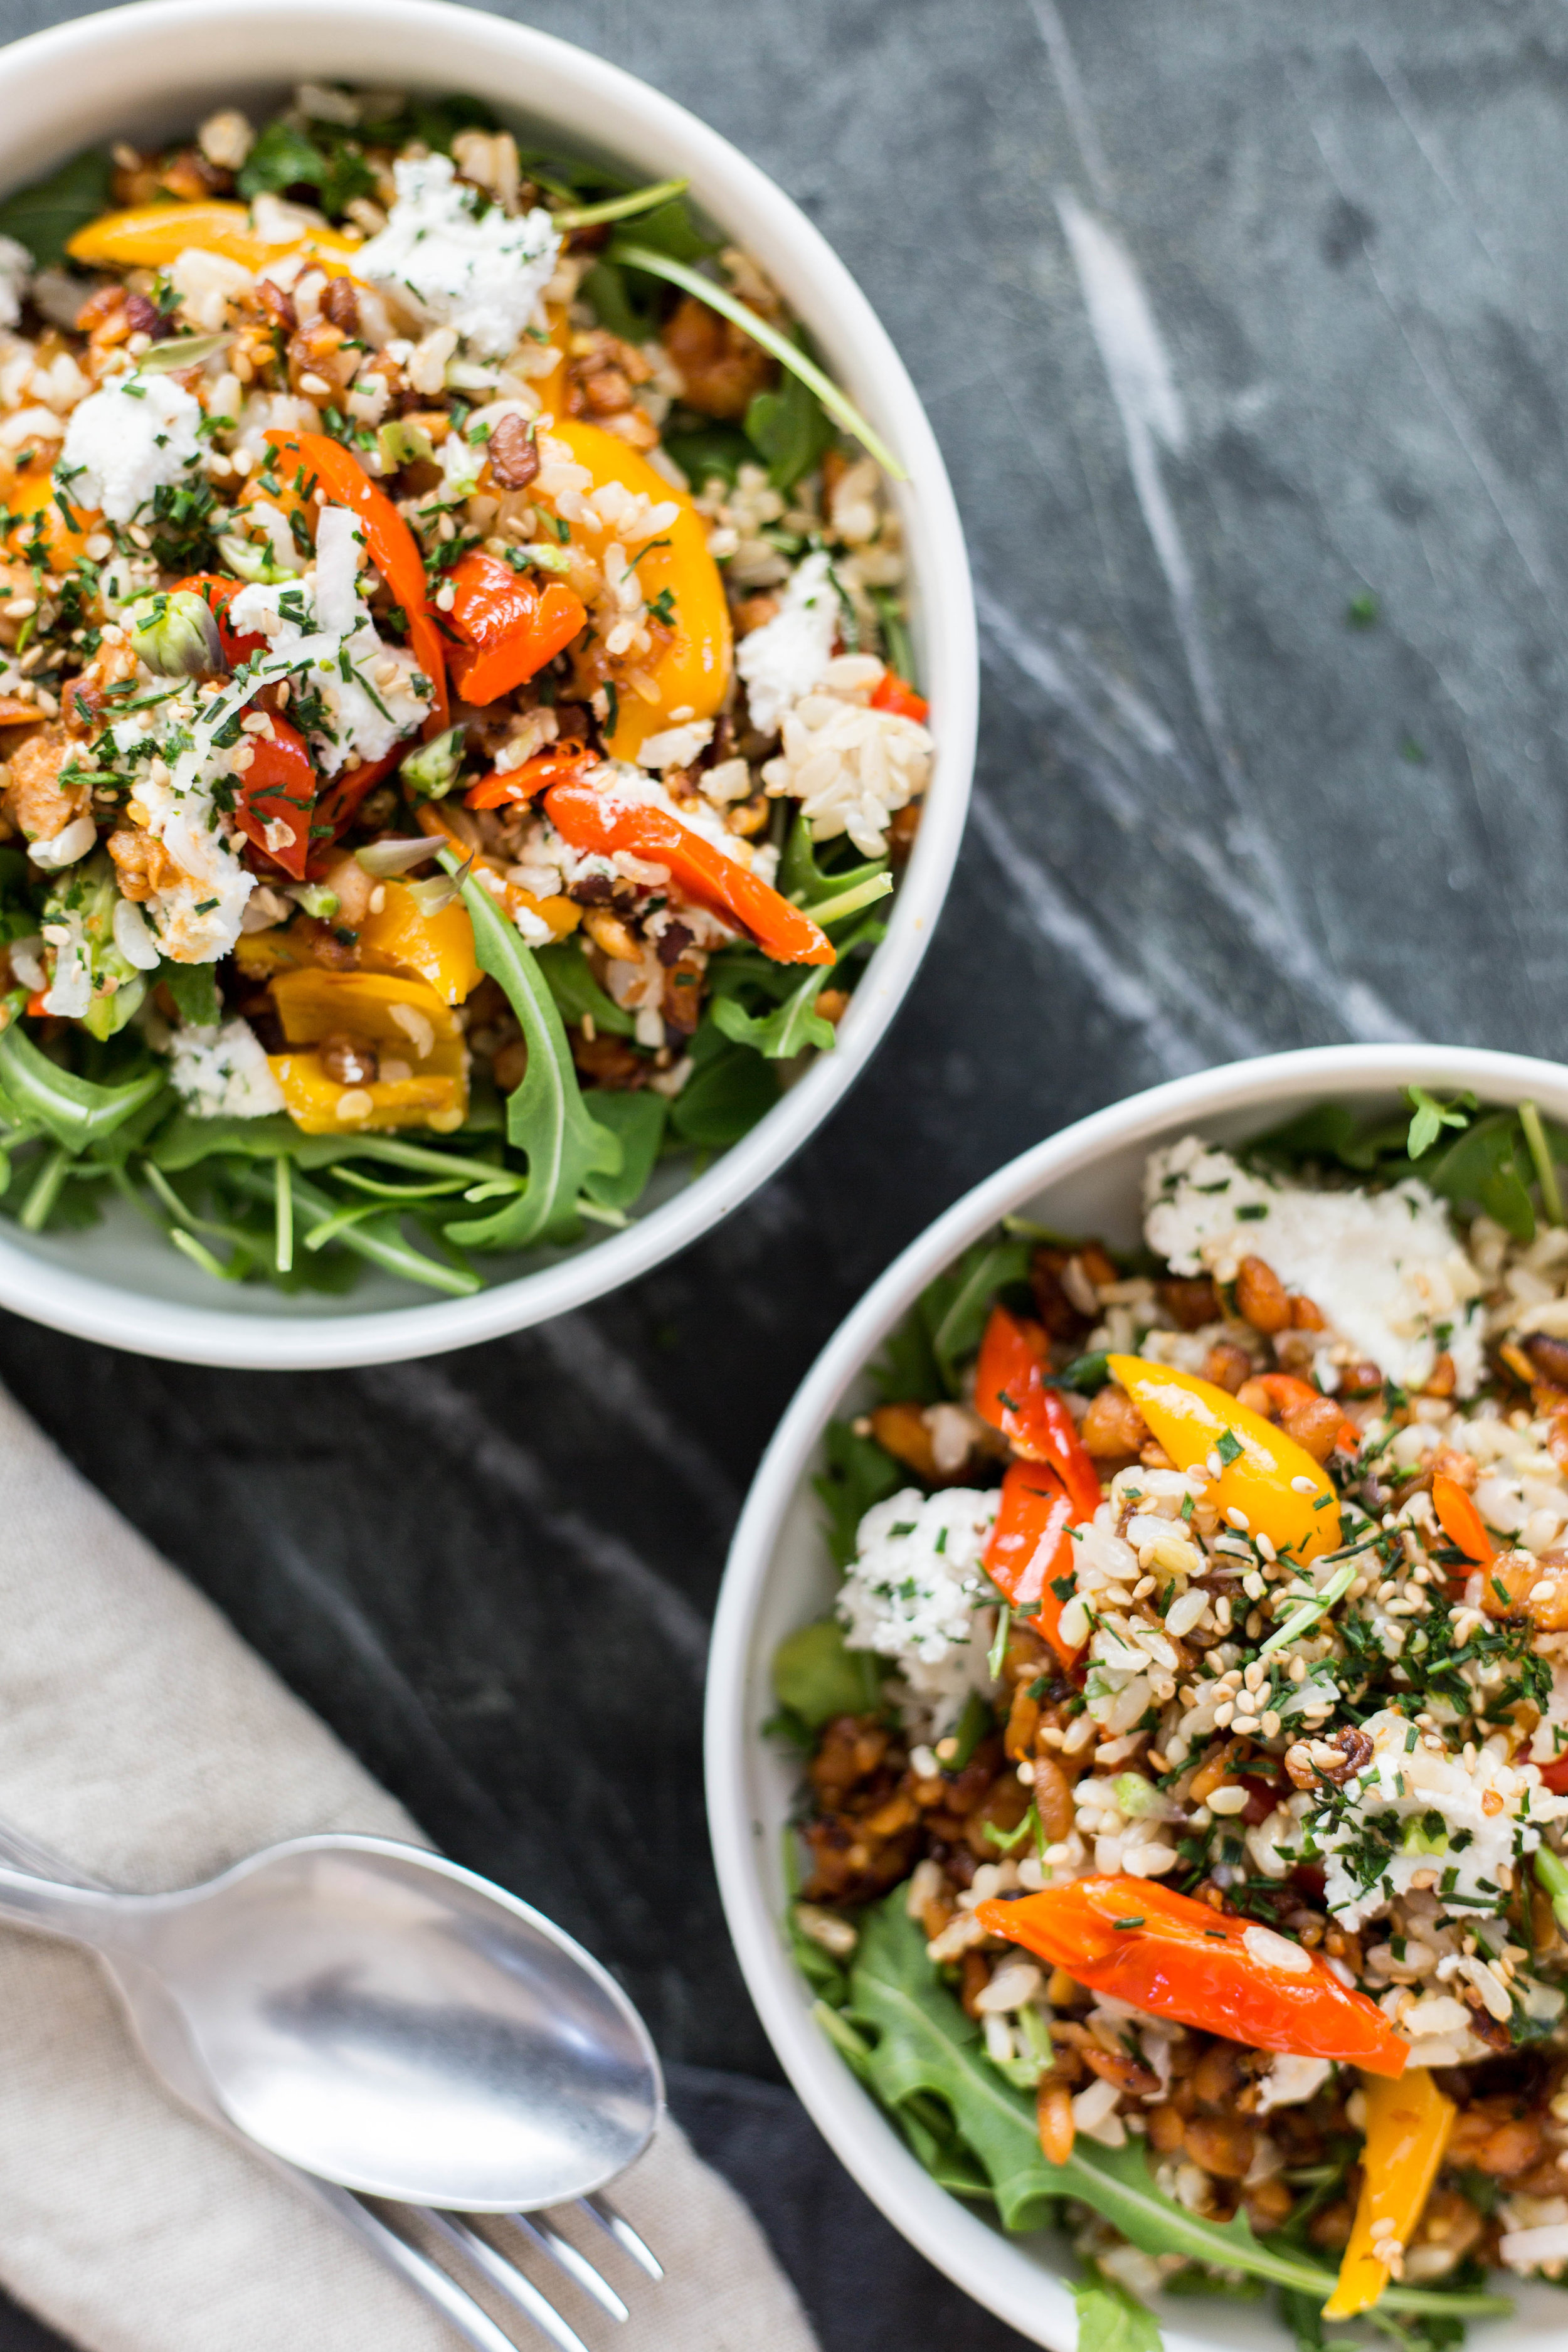 Recipe: Crumbled Tempeh Salad with arugula rice topped with herbed vegan ricotta cheese | #plantbased #glutenfree #puremamas | @JuliNovotny